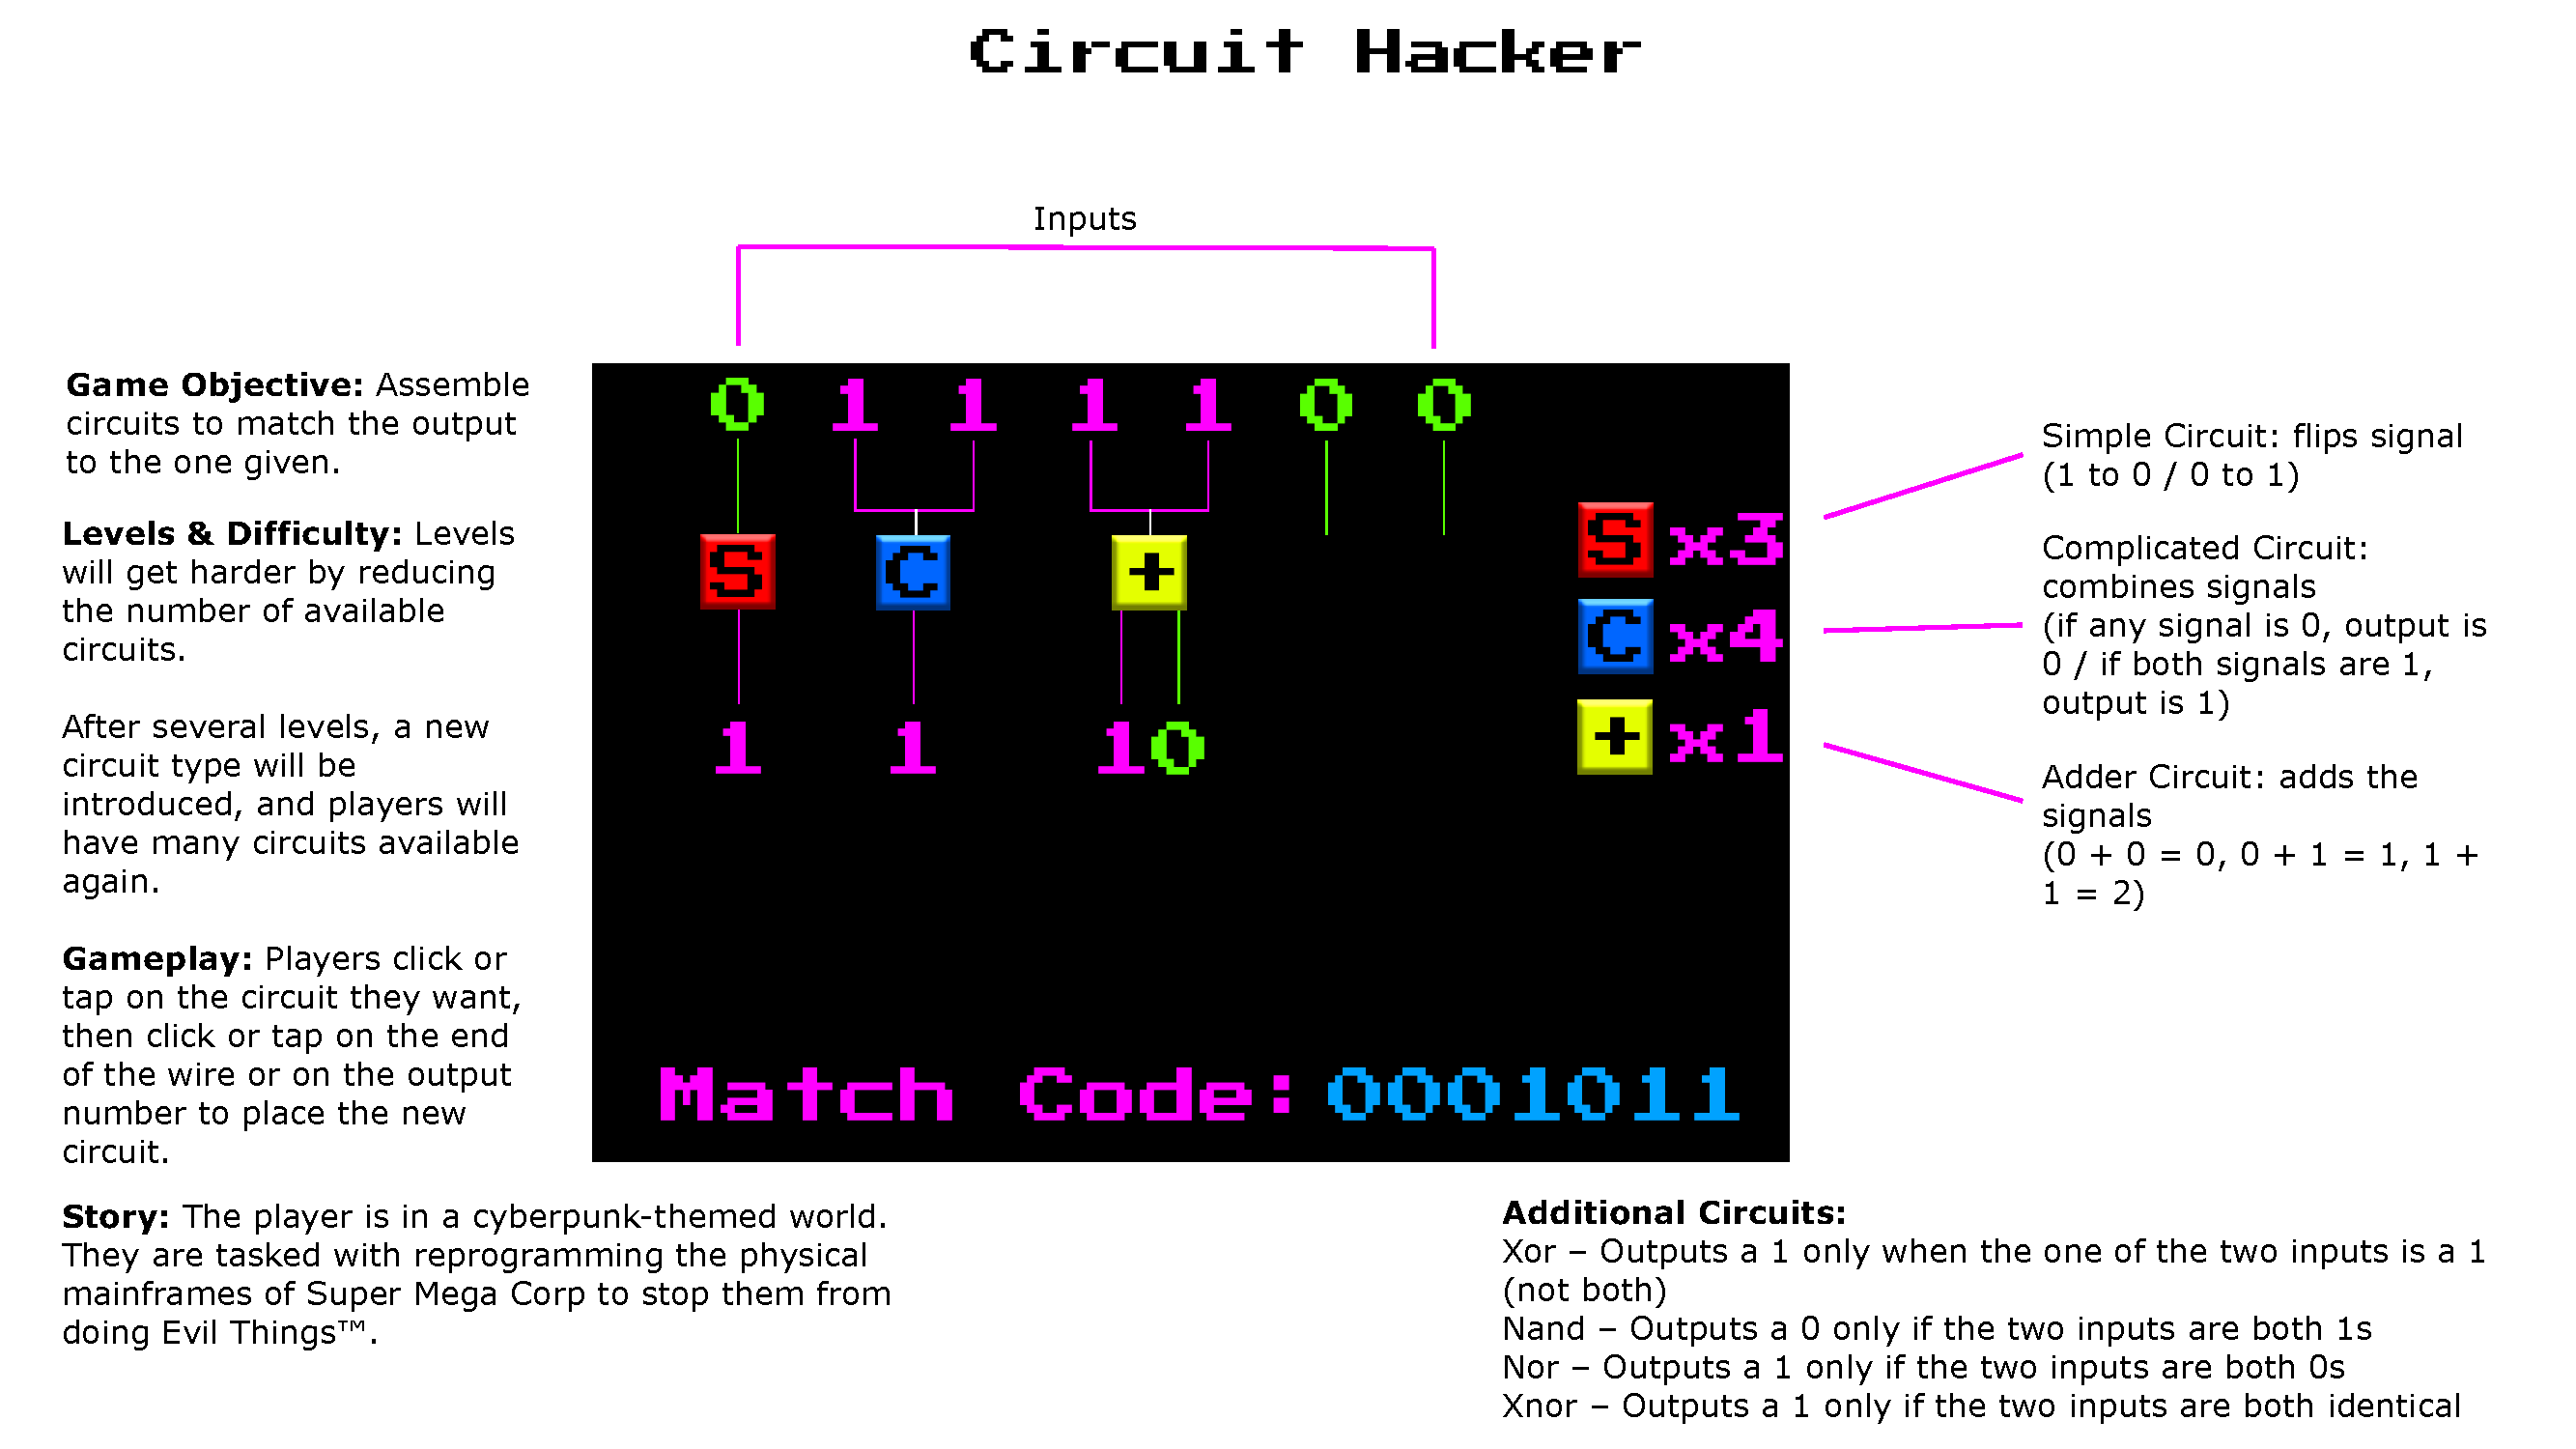 One page design document for Circuit Hacker game.